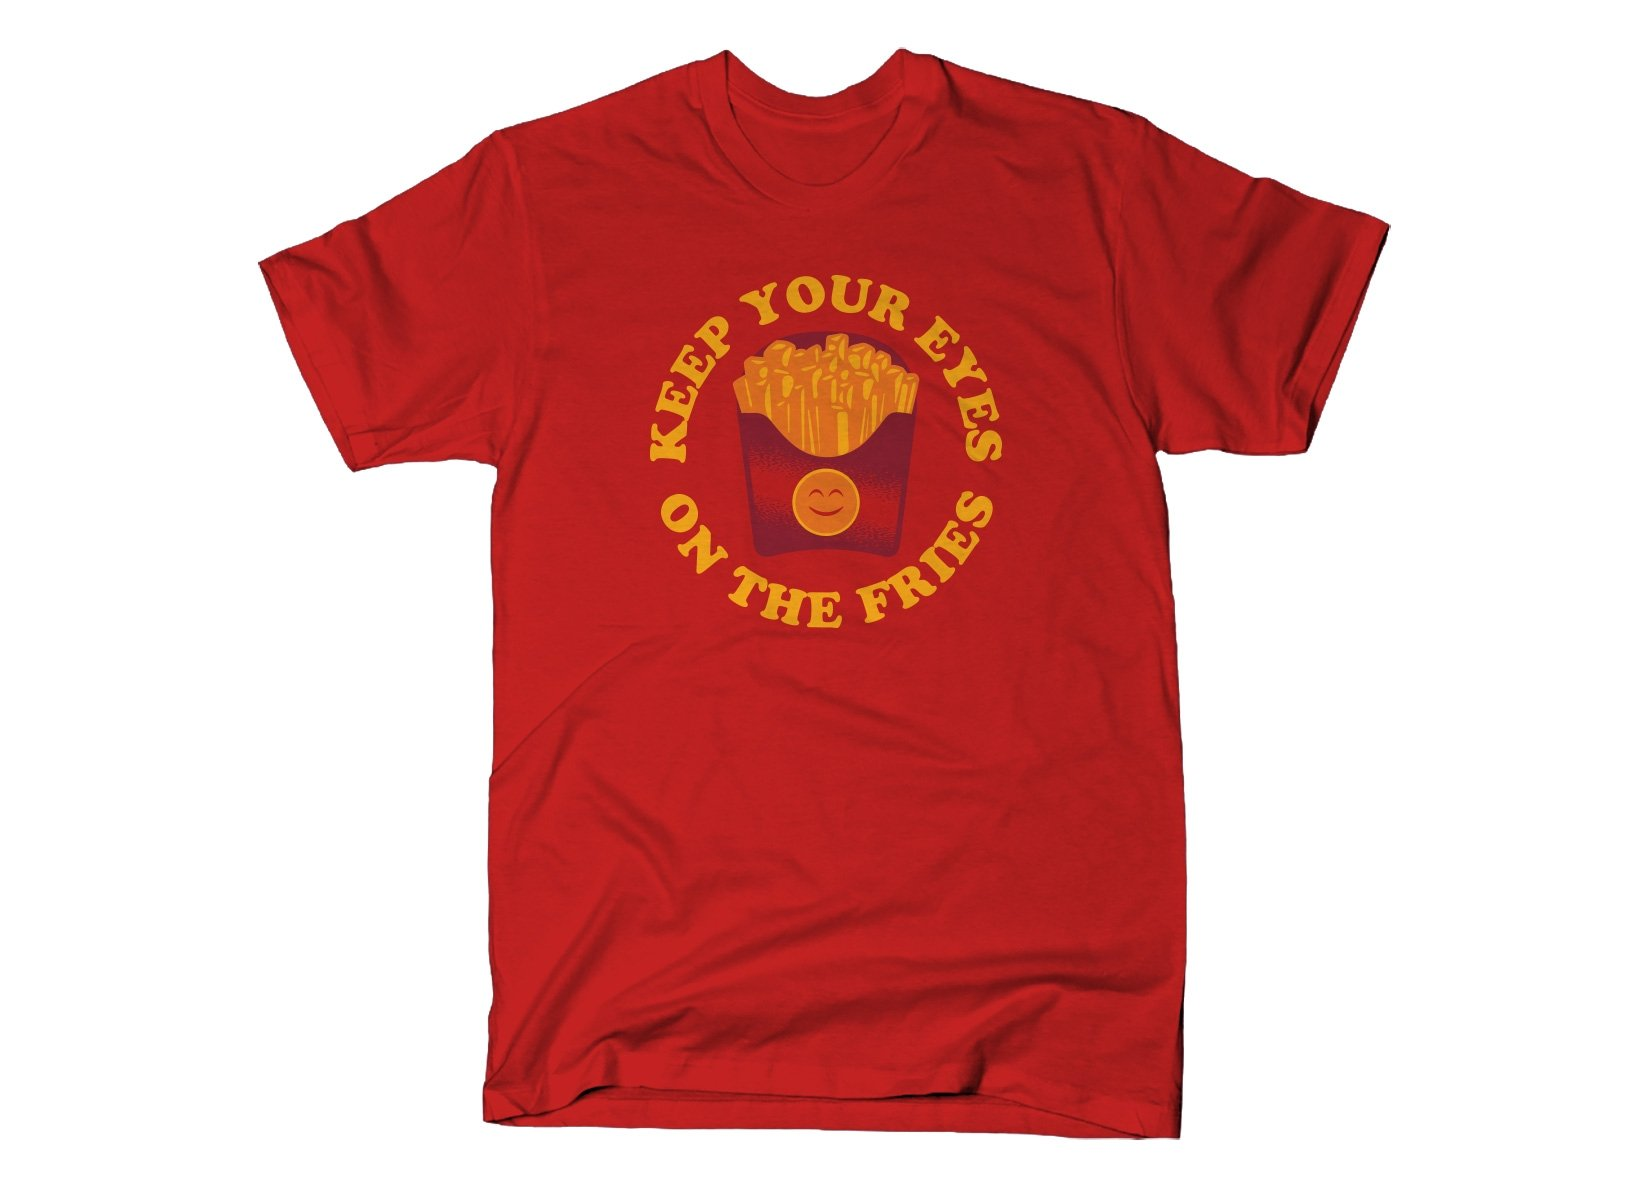 Keep Your Eyes On The Fries on Mens T-Shirt